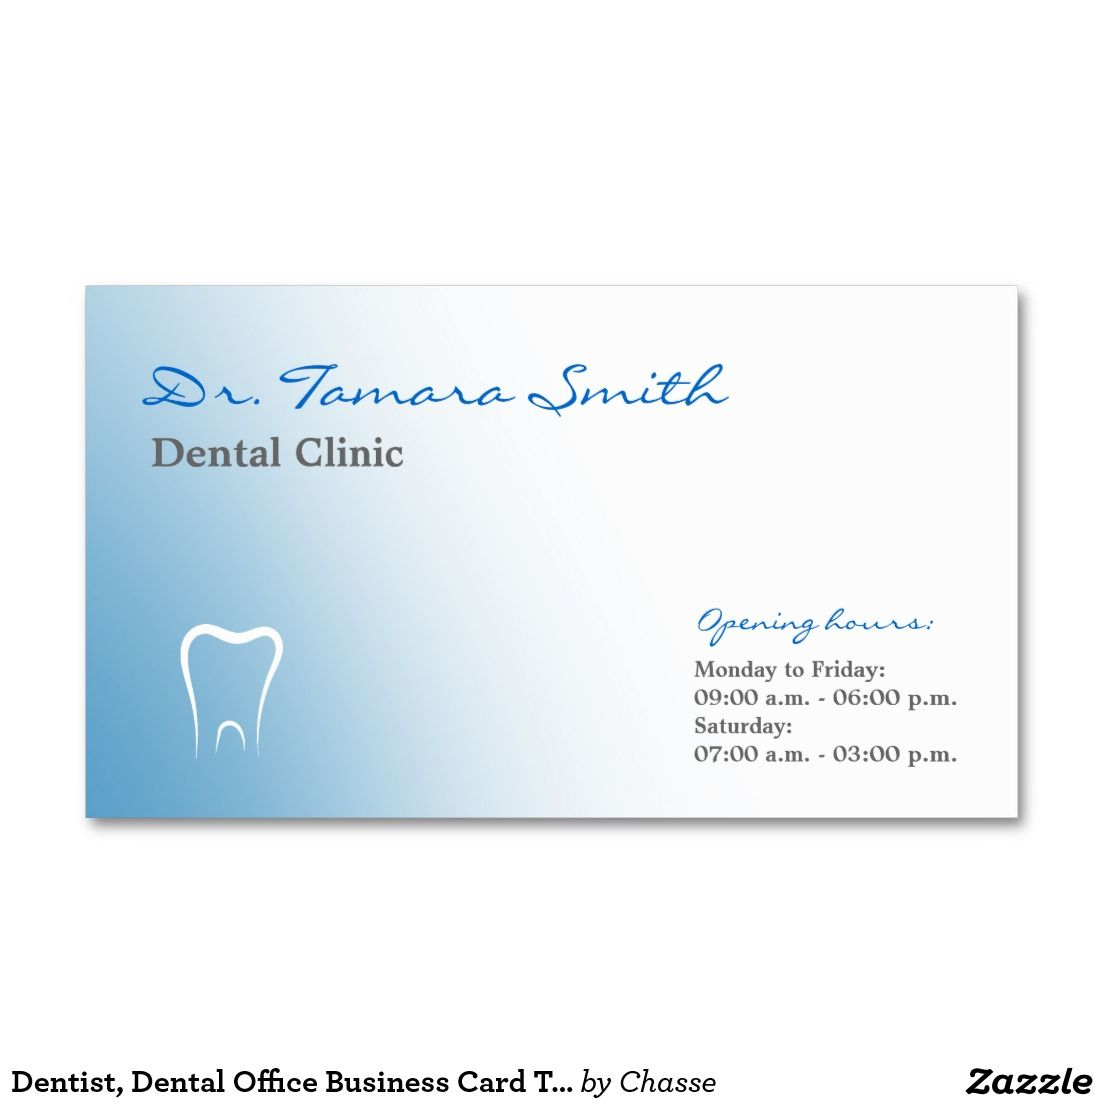 Dentist dental office business card template cabinet pinterest dentist dental office business card template cheaphphosting Image collections